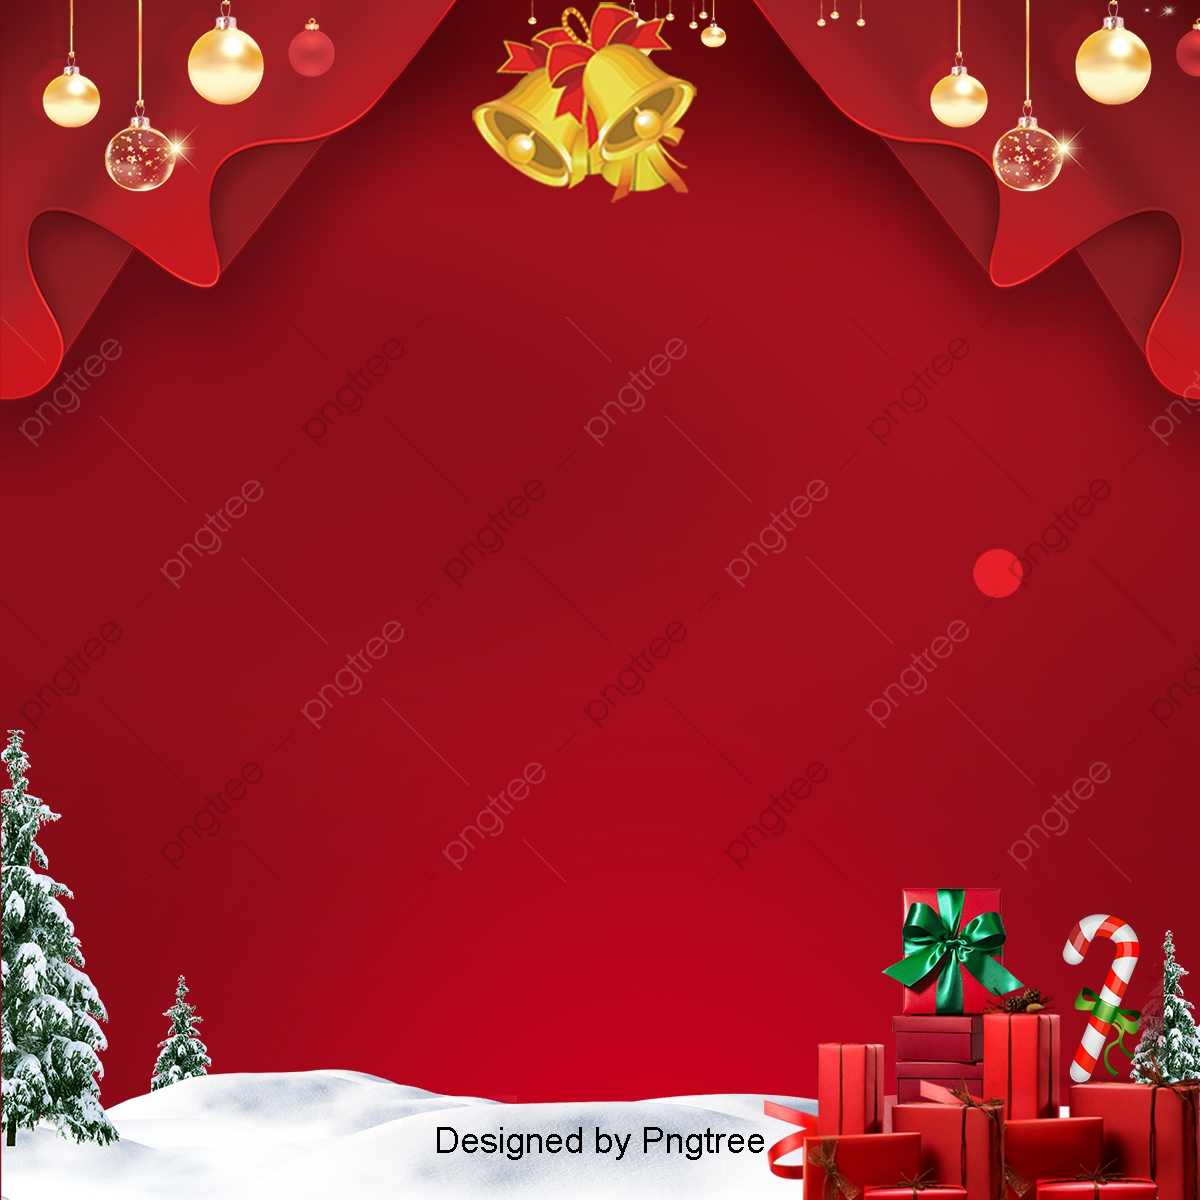 Christmas Background Design.Red Christmas Background At The Fashion Design Golden Bell